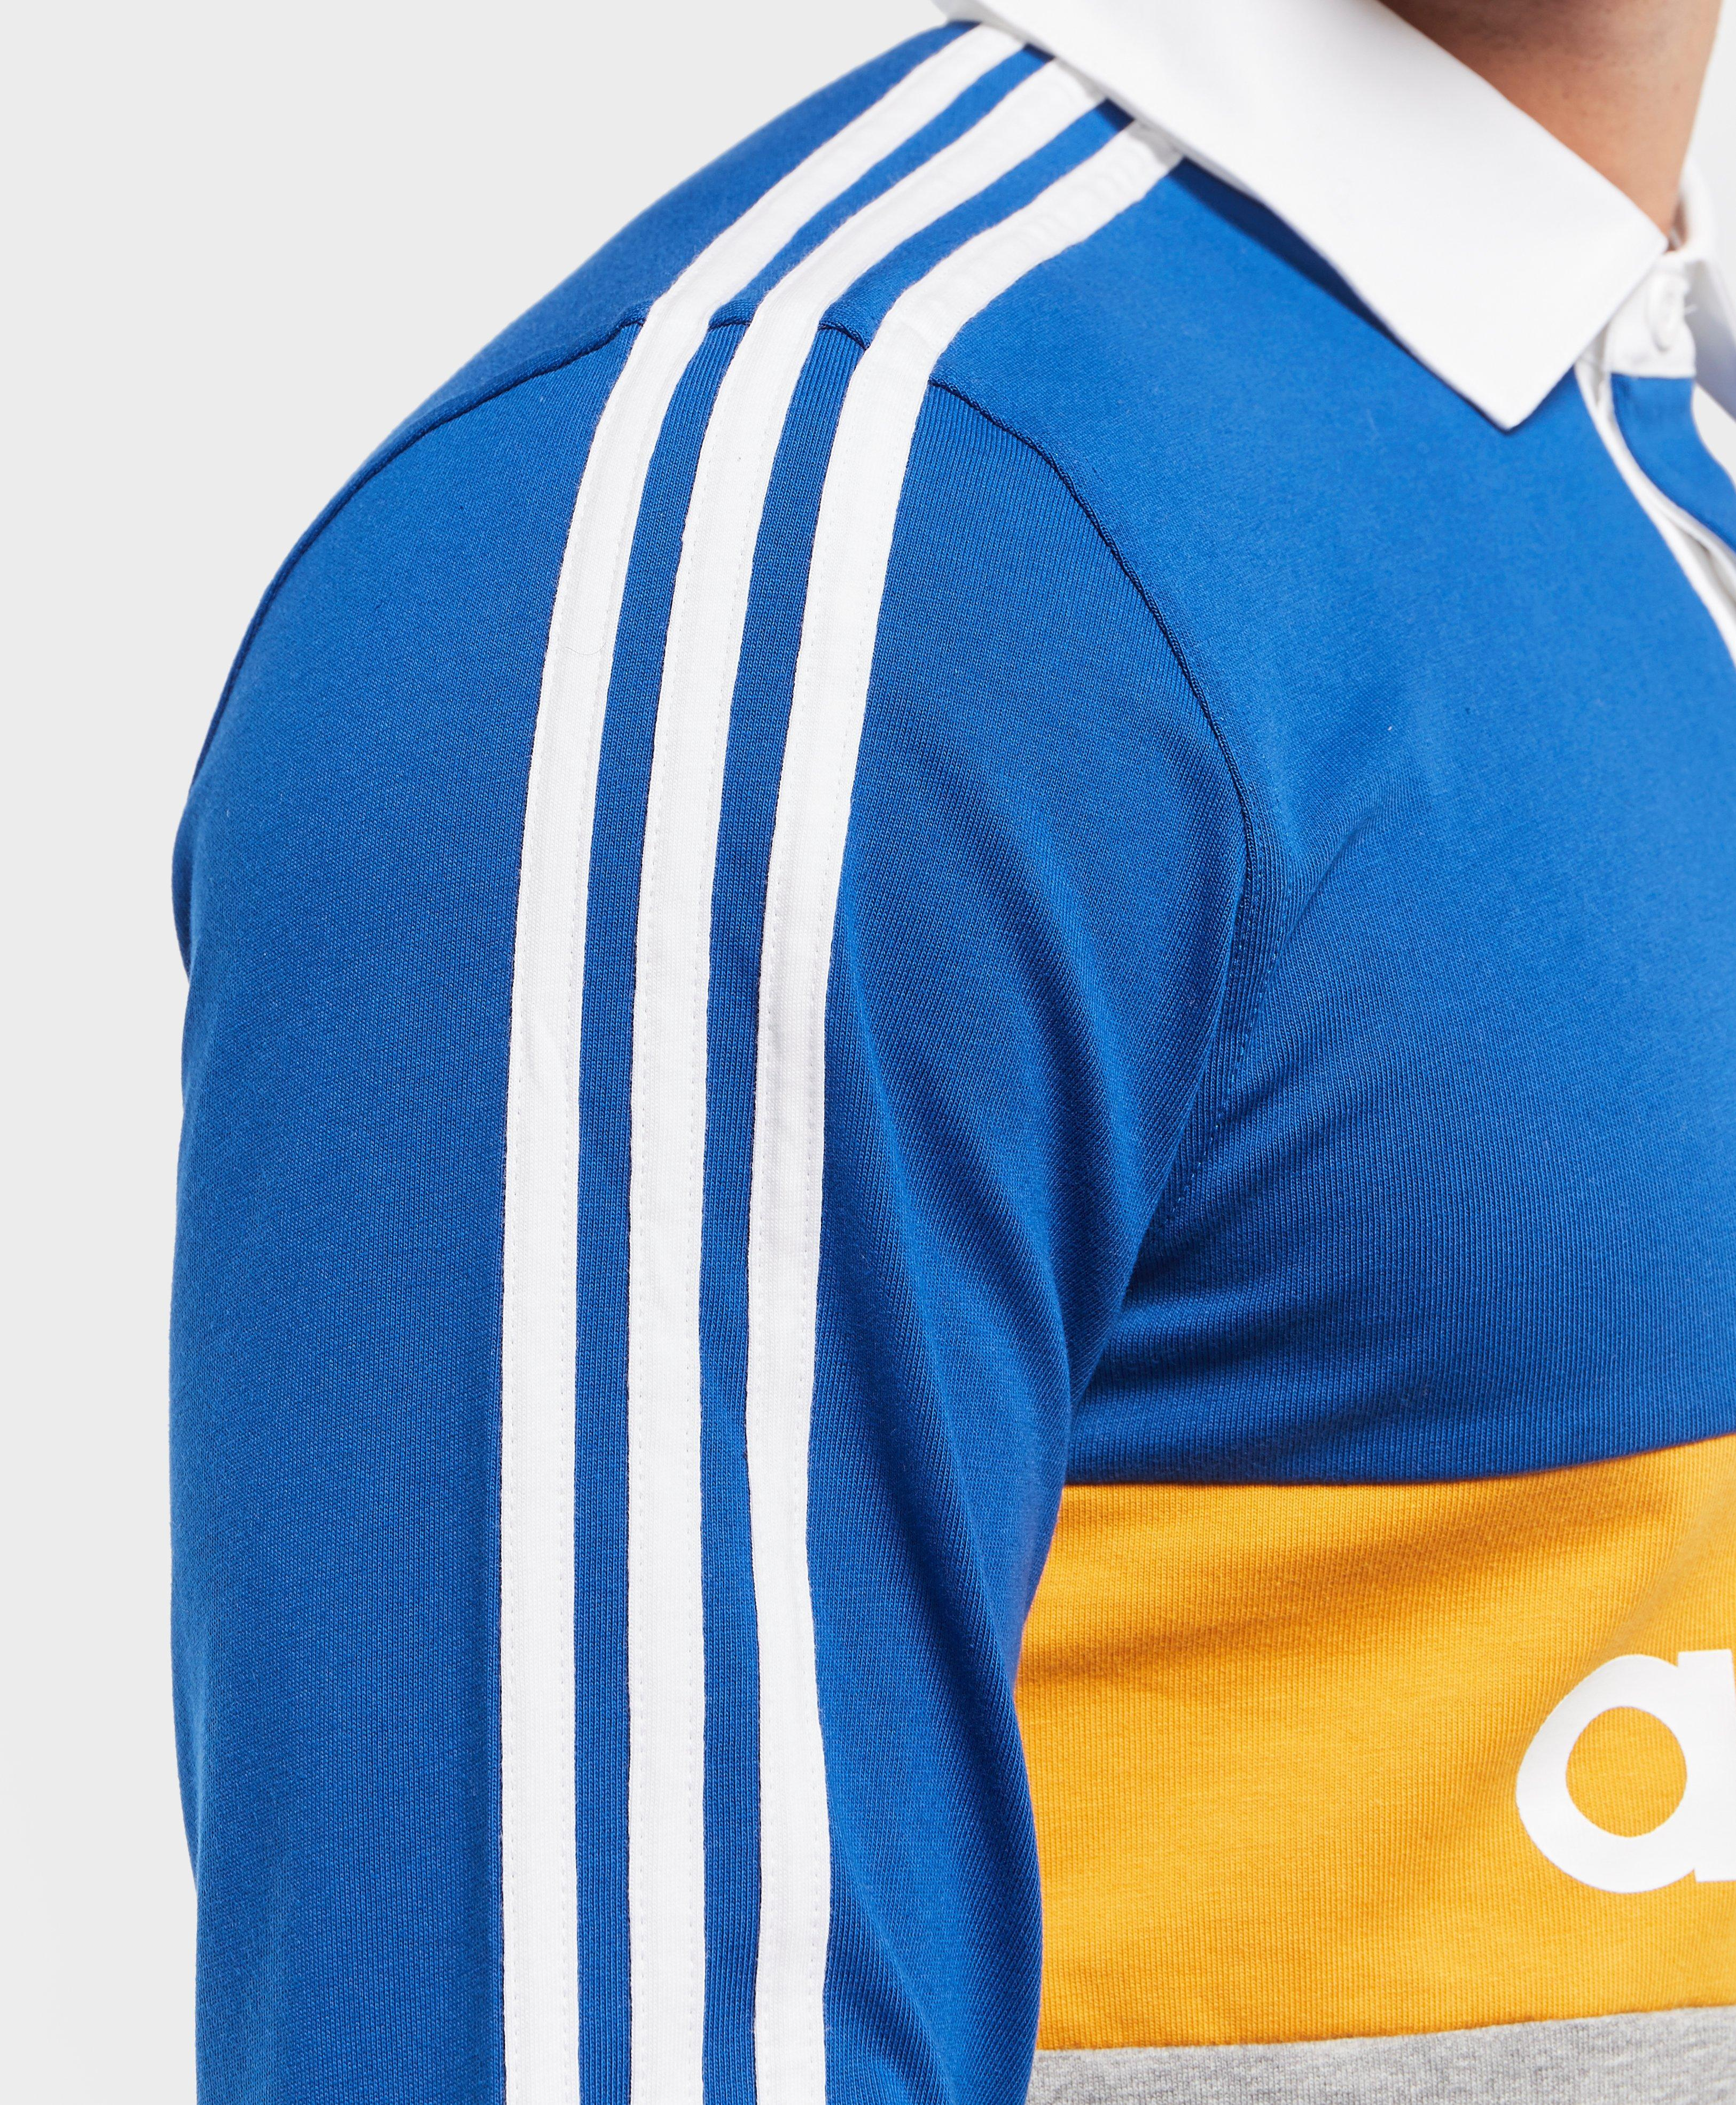 adidas Originals Skateboarding Heritage Polo in Blue/Yellow (Blue) for Men